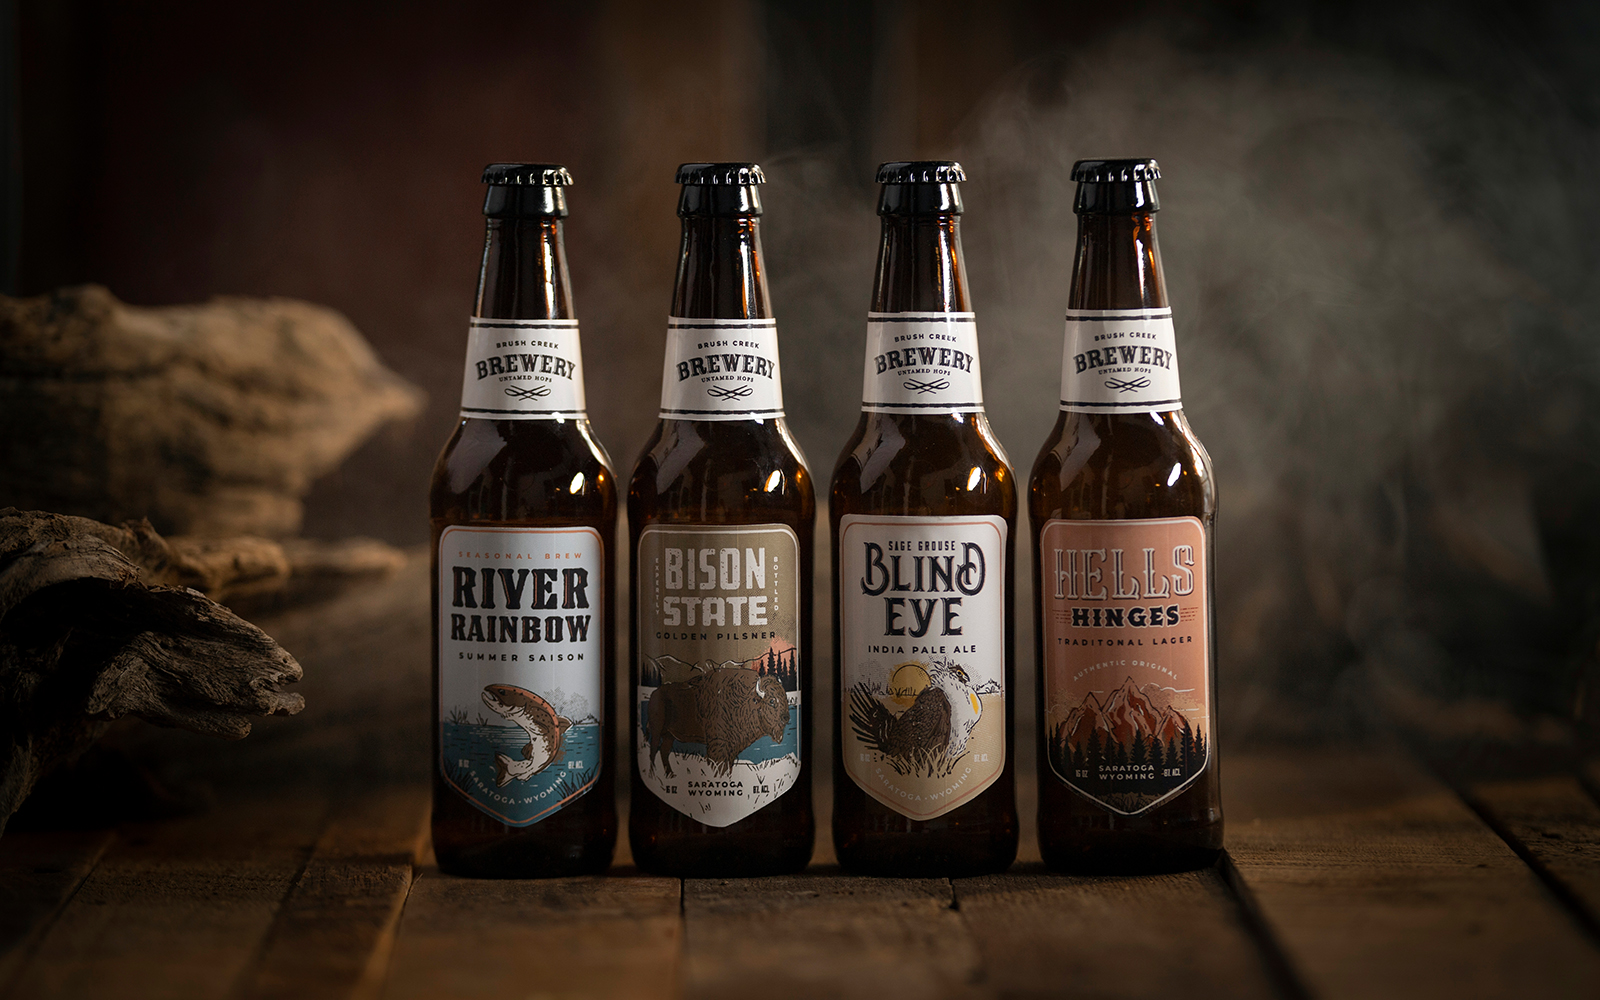 Four bottles of Brush Creek Brewery beer collection. River Rainbow, Bison State, Blind Eye, and Hells Hinges